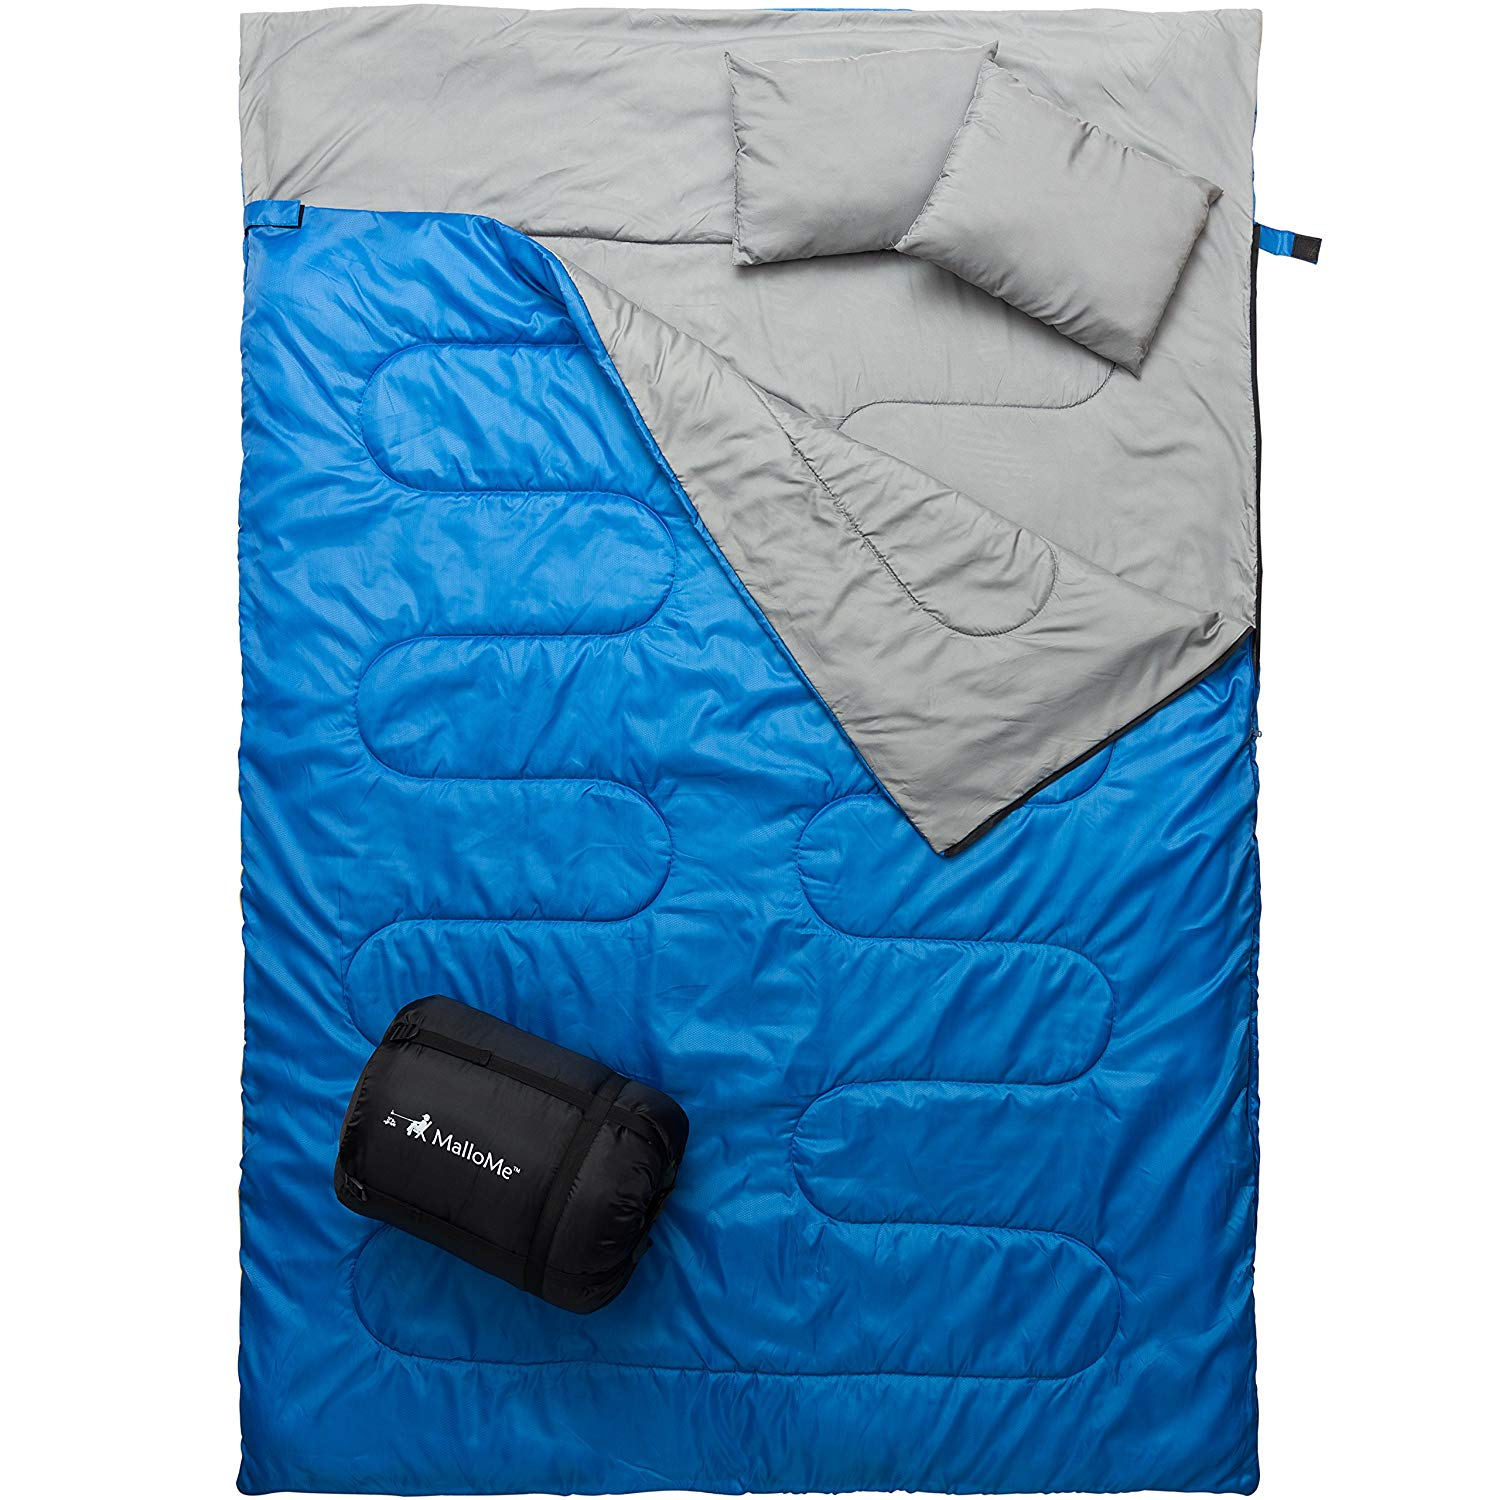 Camping Sleeping Bag- MalloMe